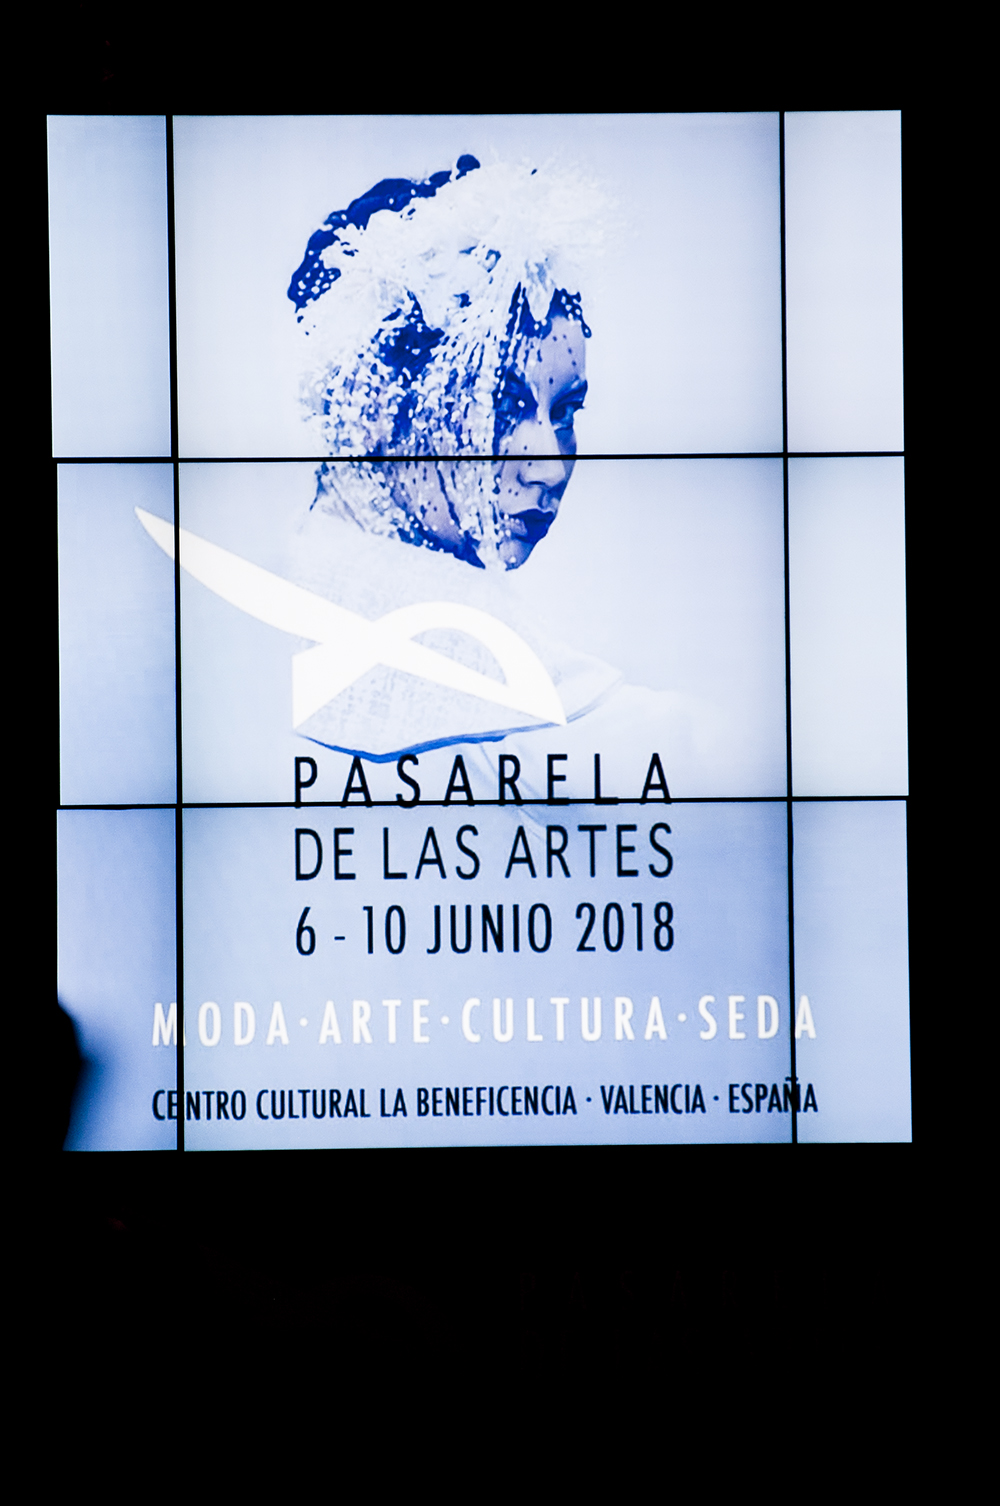 pablo escudero_somethingfashion valencia spain bloggers influencers runway streetstyle pasareladelasartes silk unesco road_0817